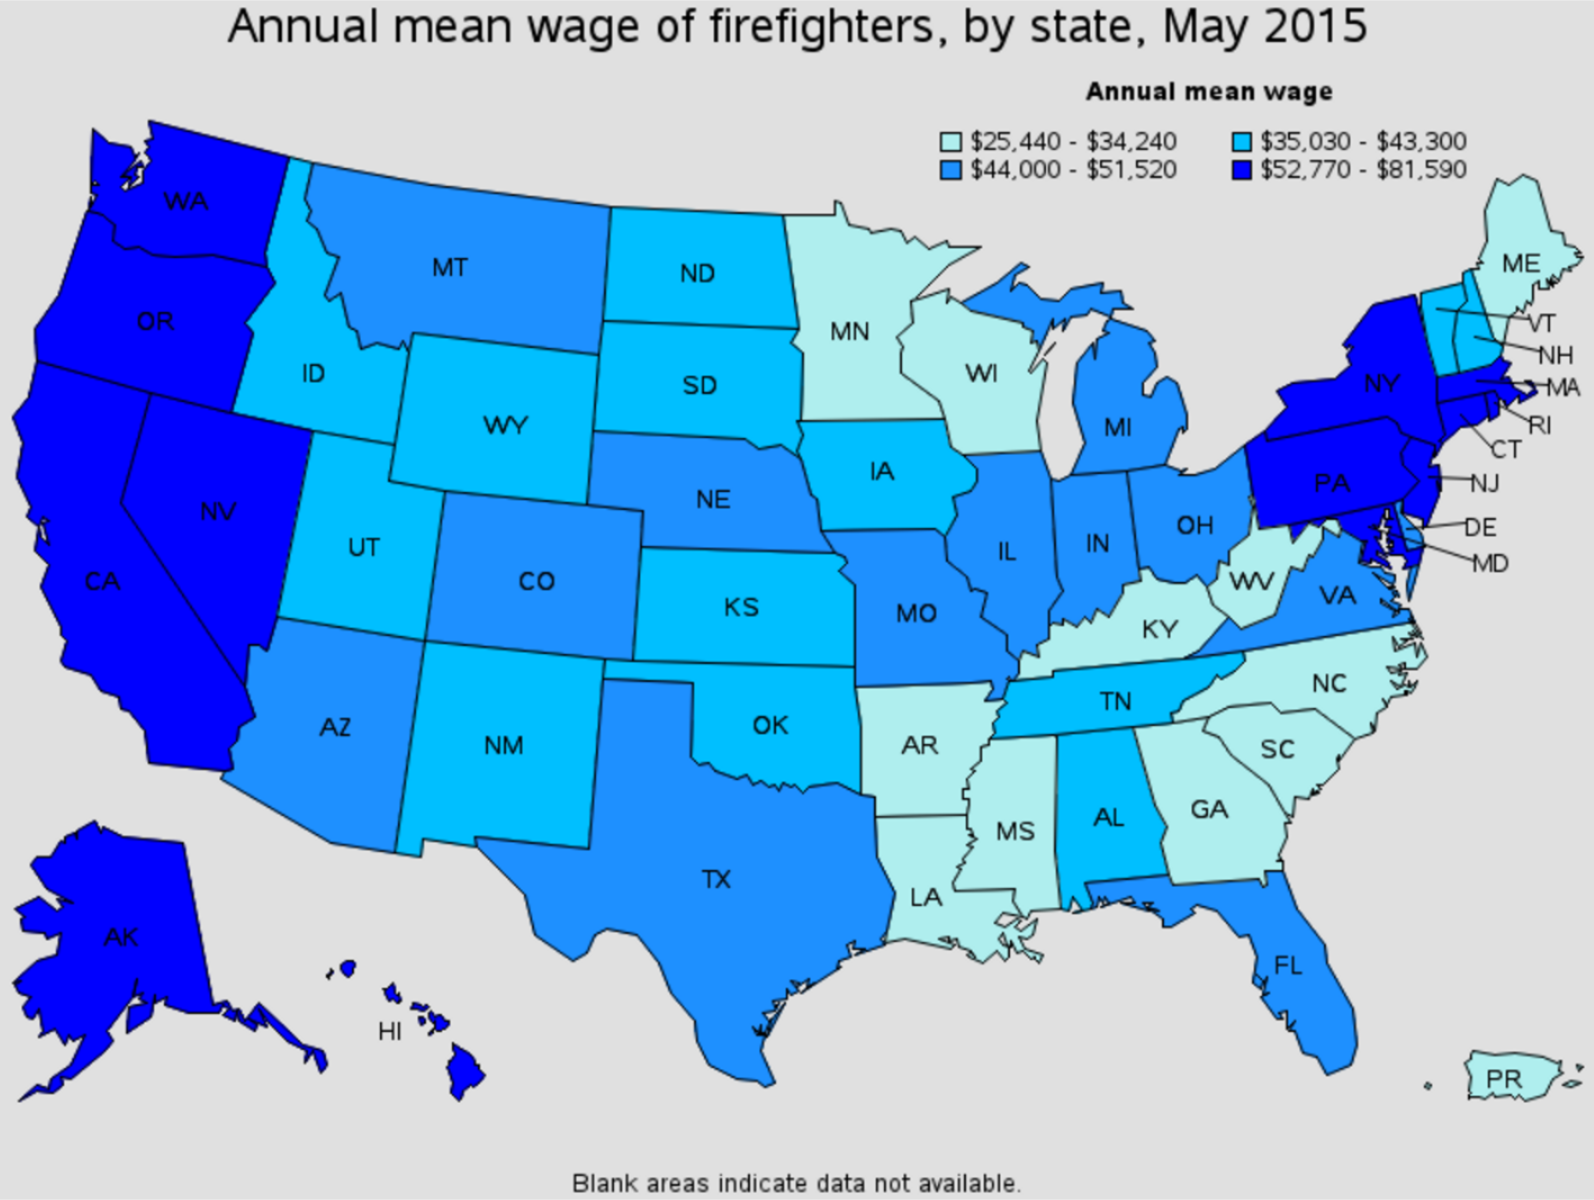 firefighter average salary by state Fargo North Dakota